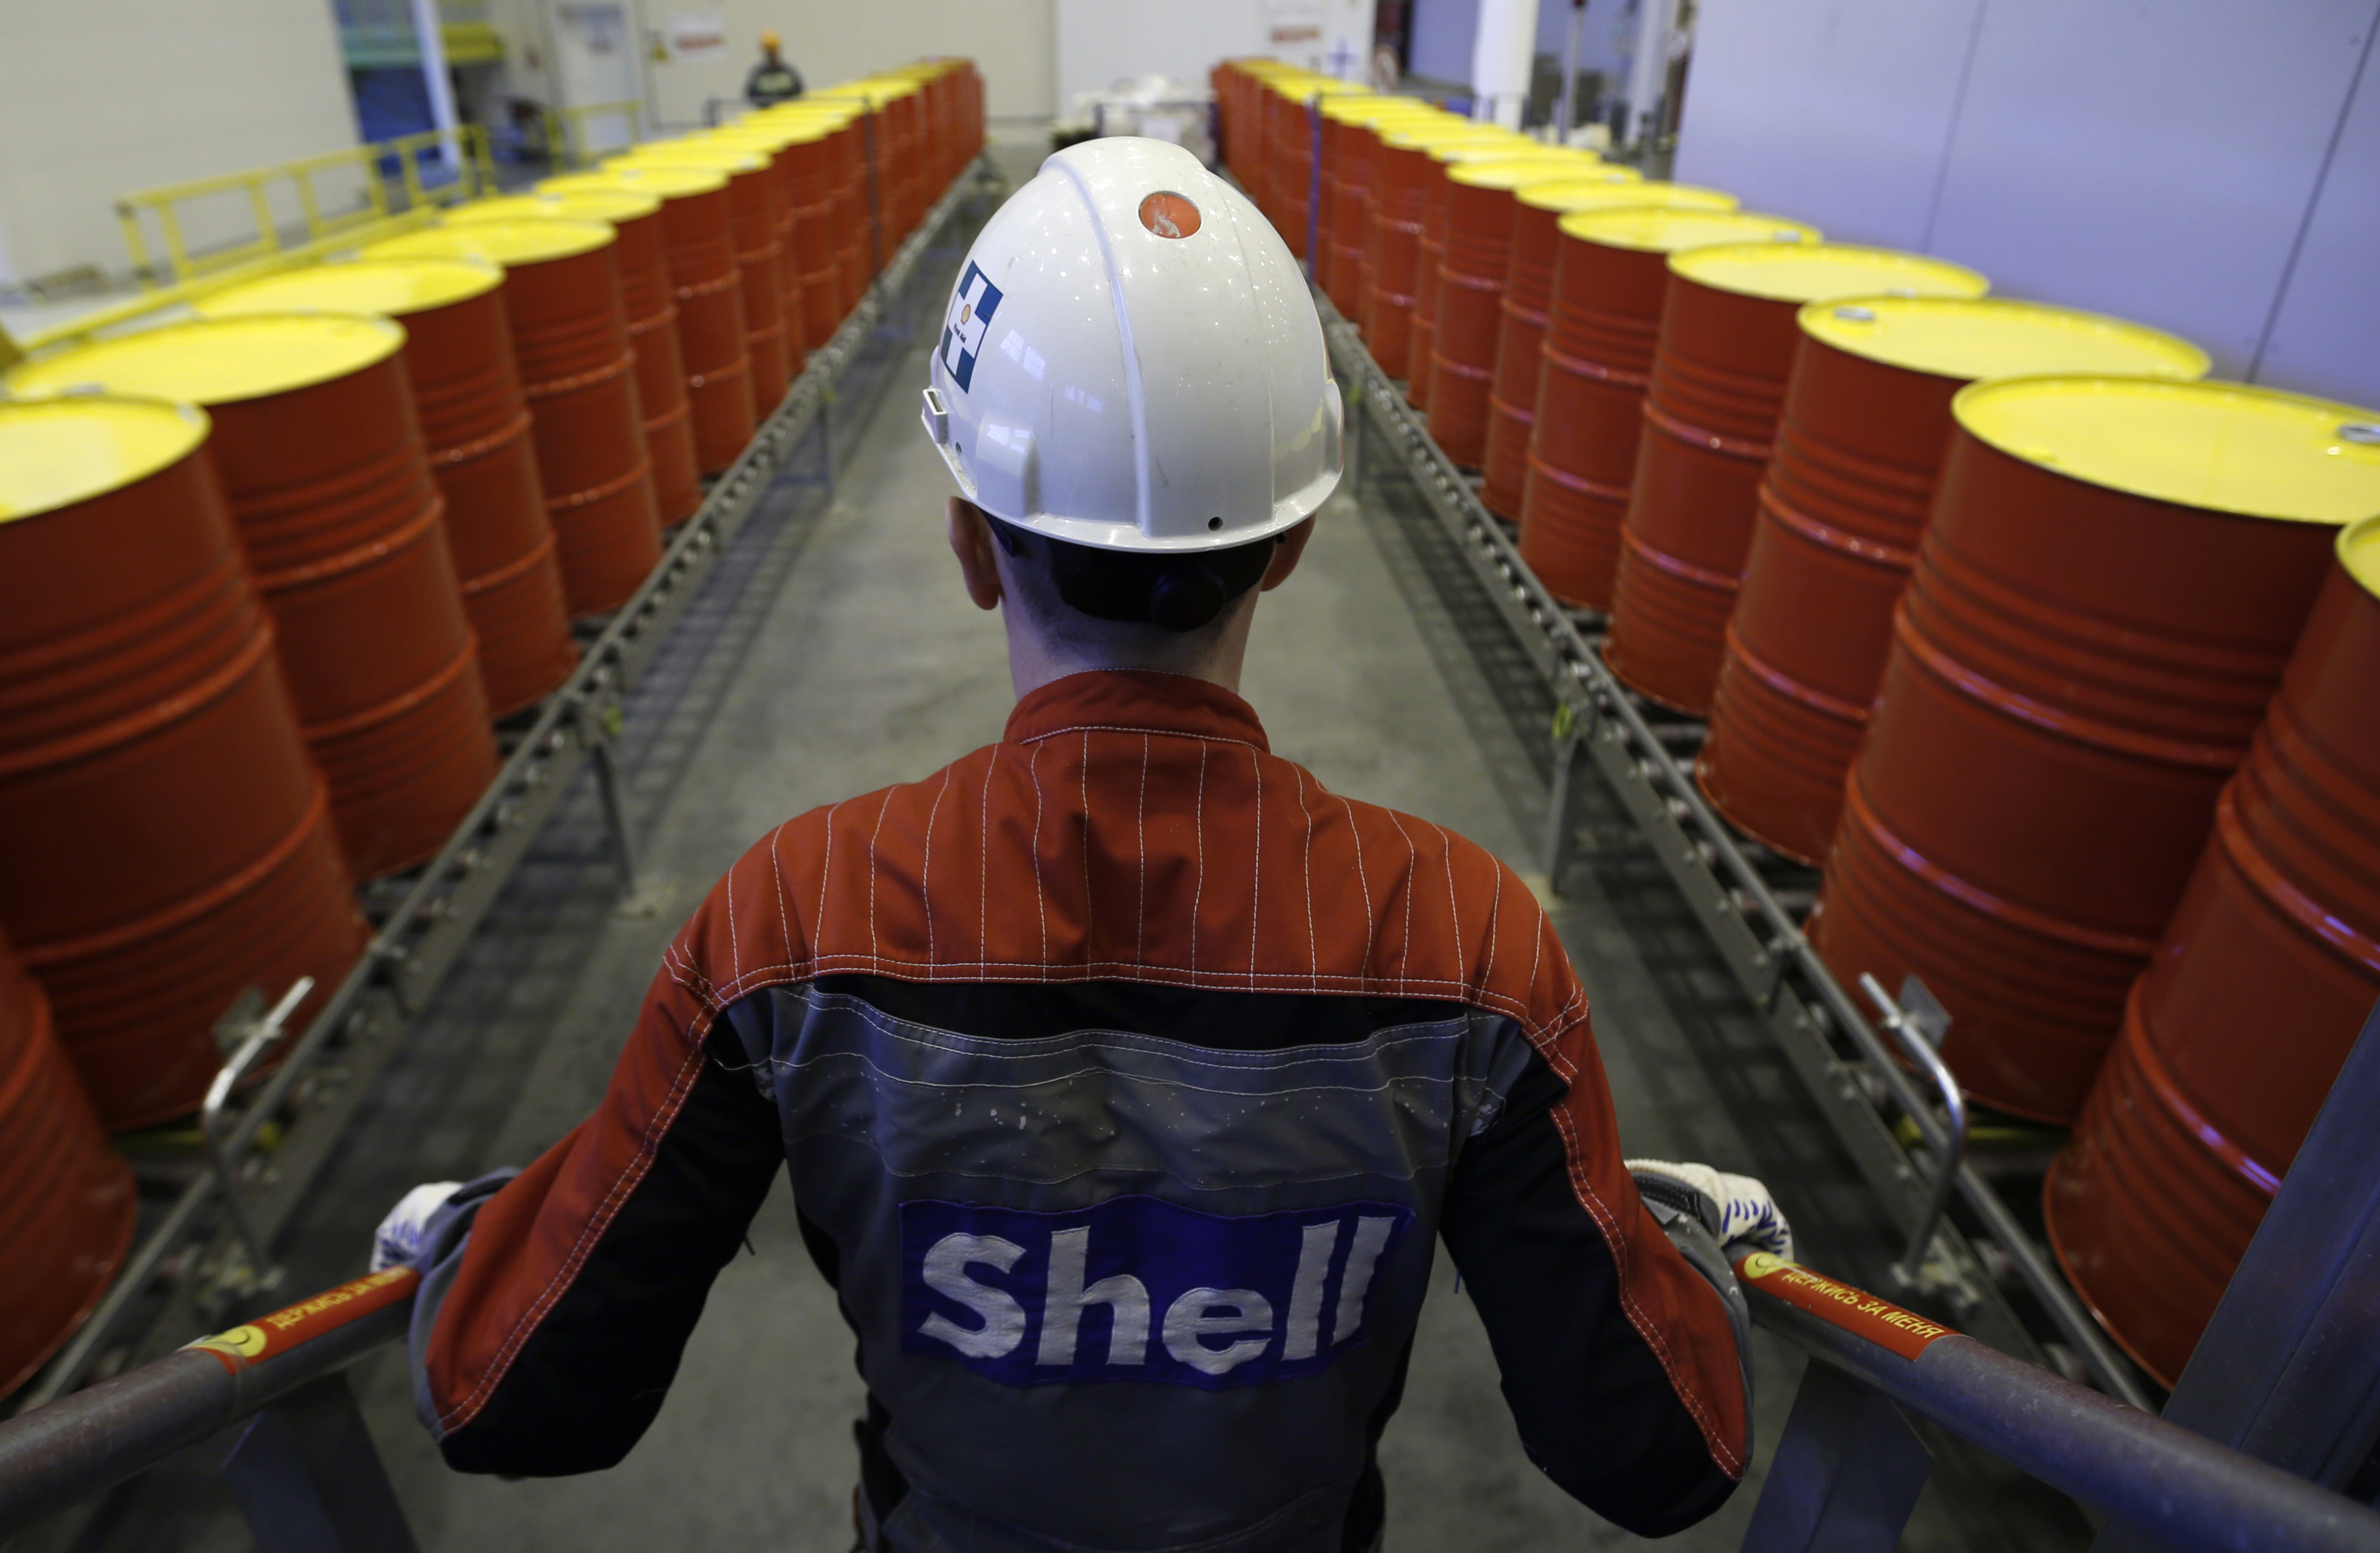 An employee stands in front of lines of oil barrels at Royal Dutch Shell Plc's lubricants blending plant in the town of Torzhok